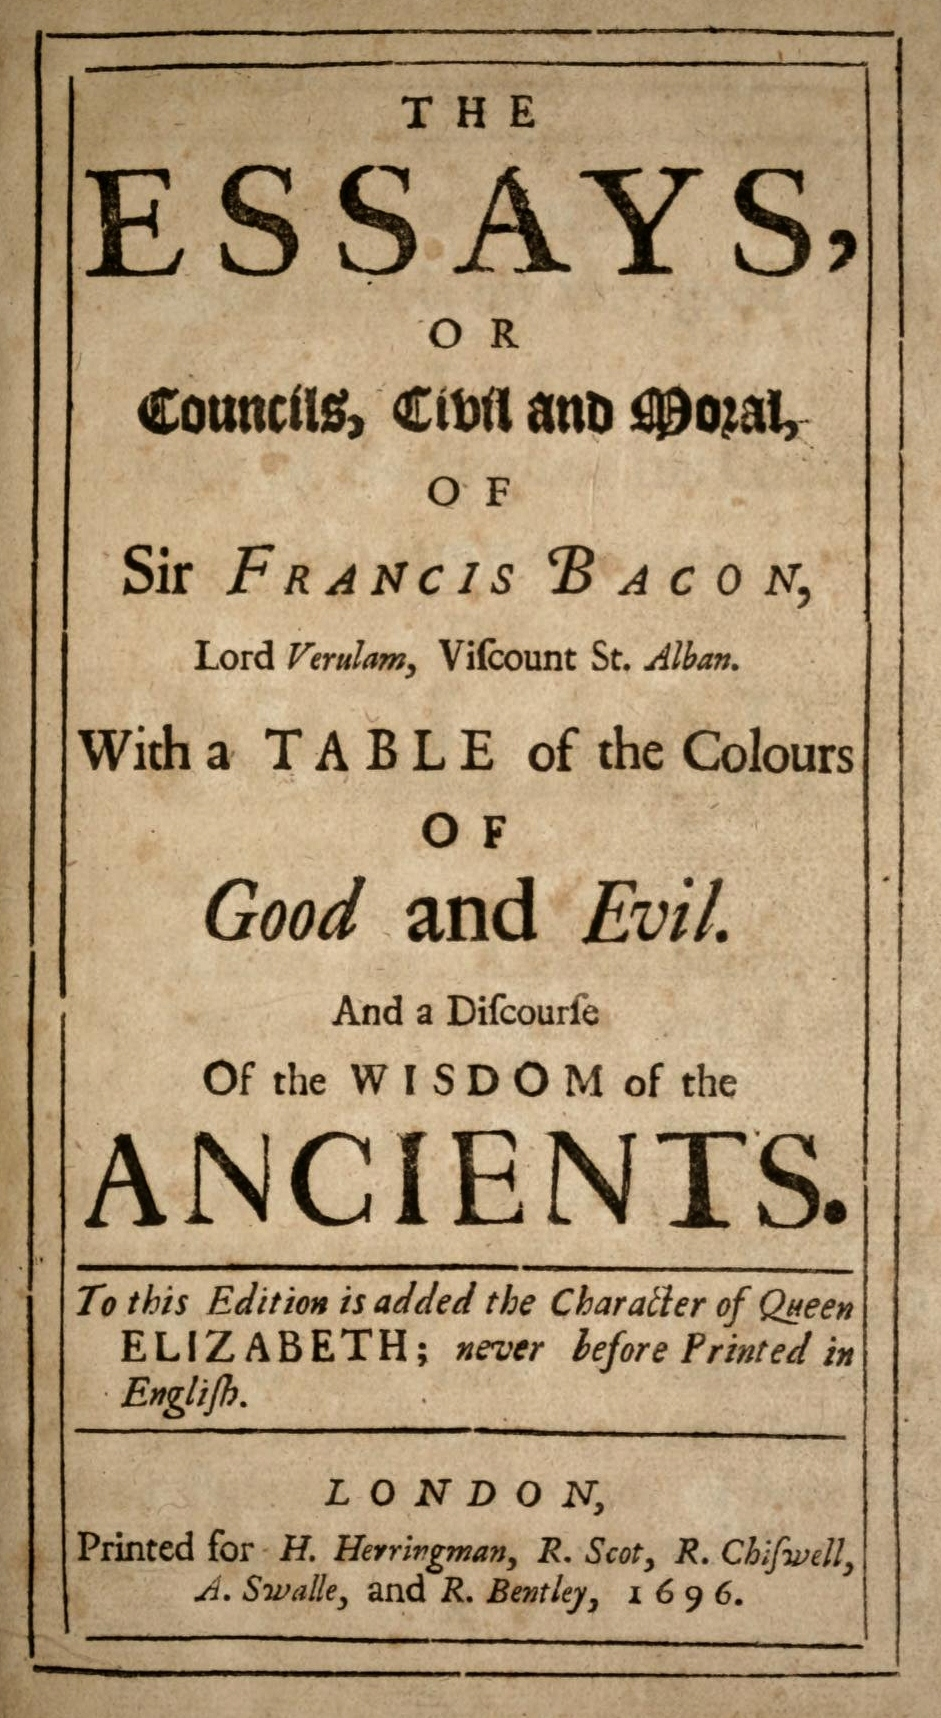 001 Bacons Essays Bacon 1696 Essay Amazing Francis Pdf Free Download Bacon's Of Truth Summary Full